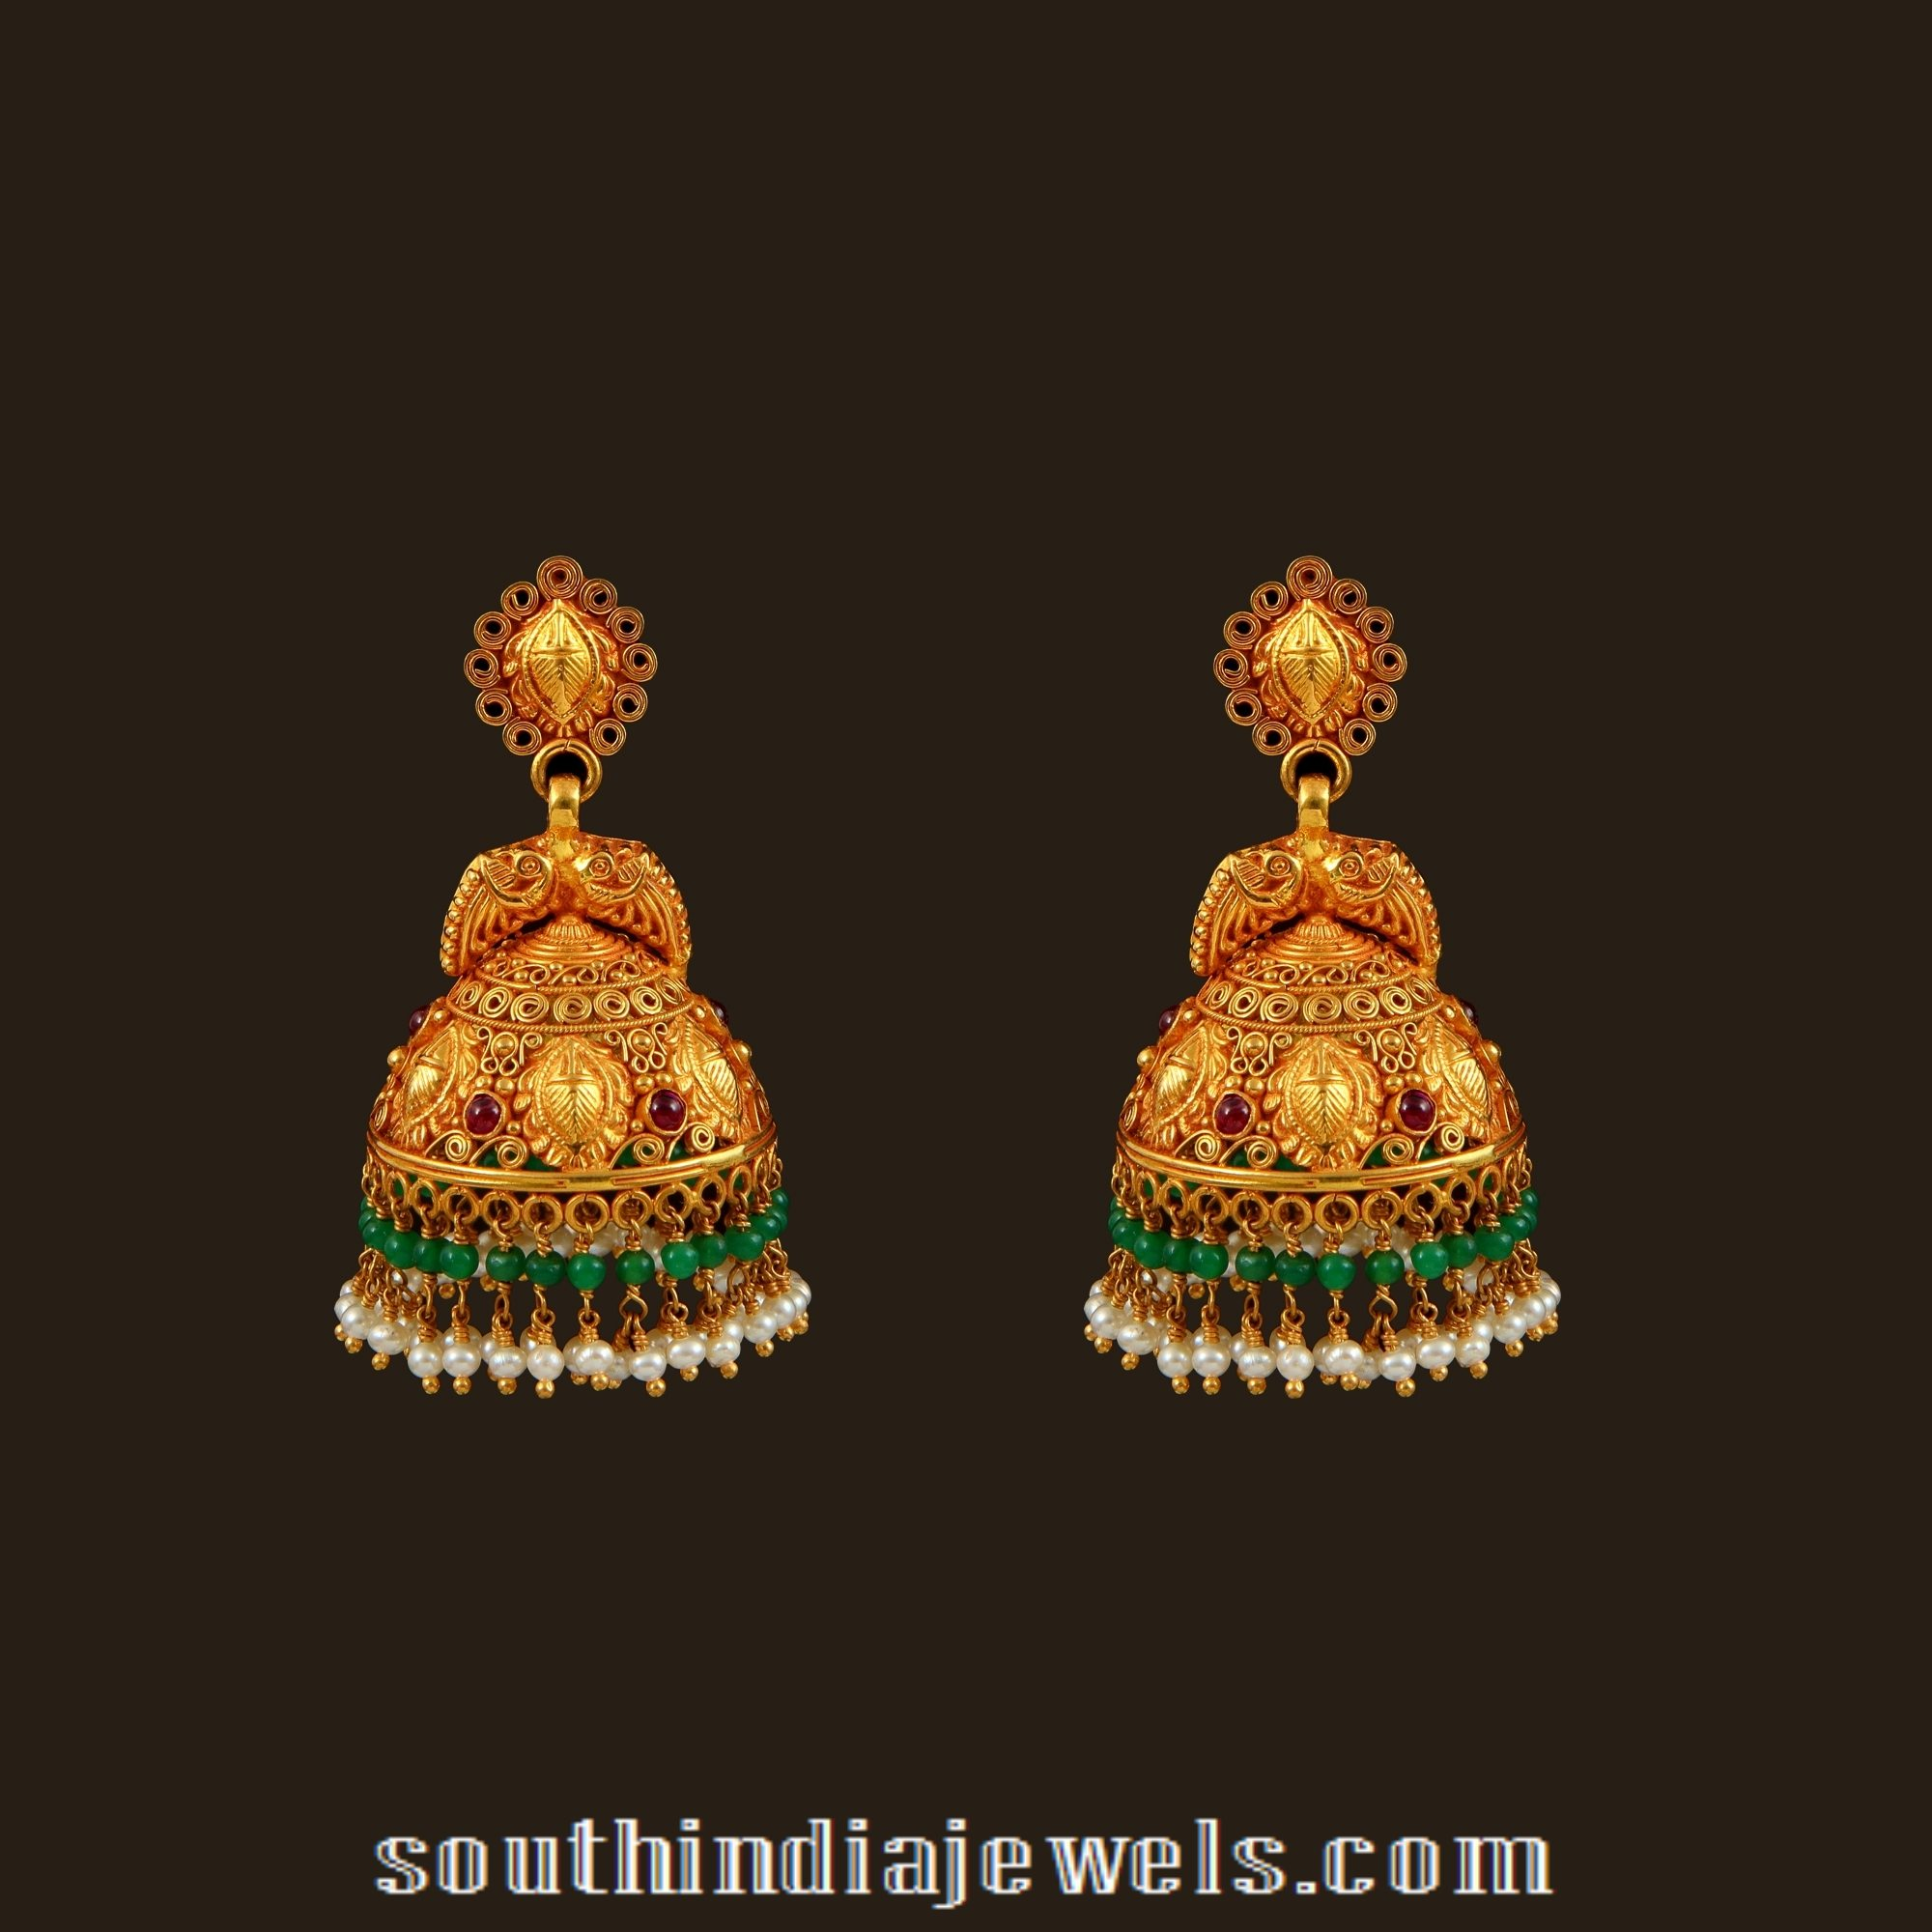 Gold Antique Bridal Jhumka From Vbj South India Jewels